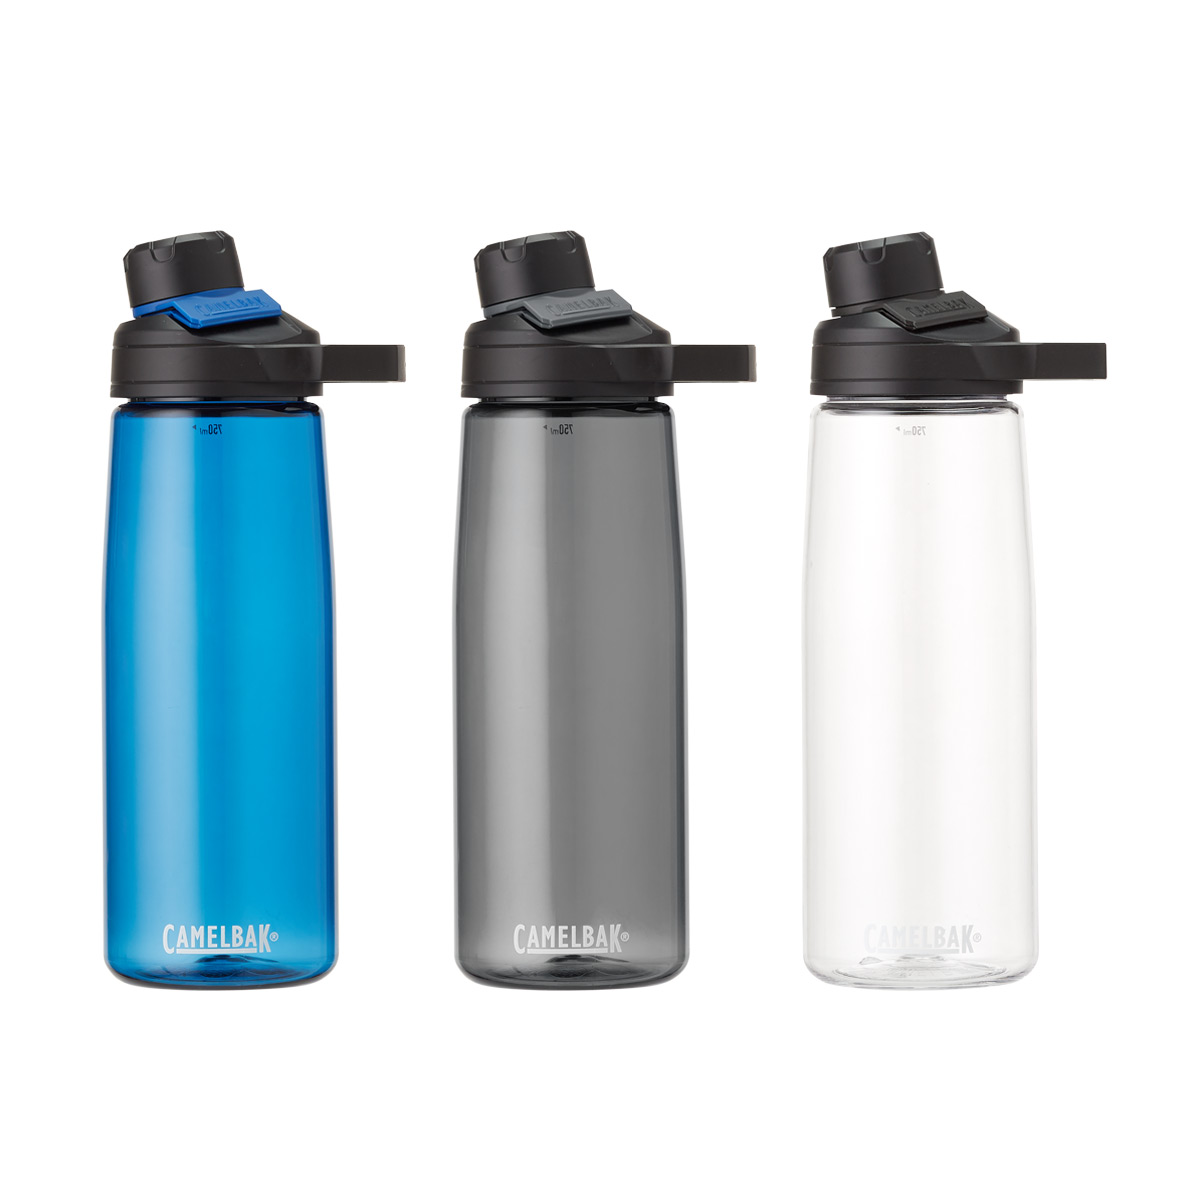 25 oz. Camelbak Chute Water Bottle